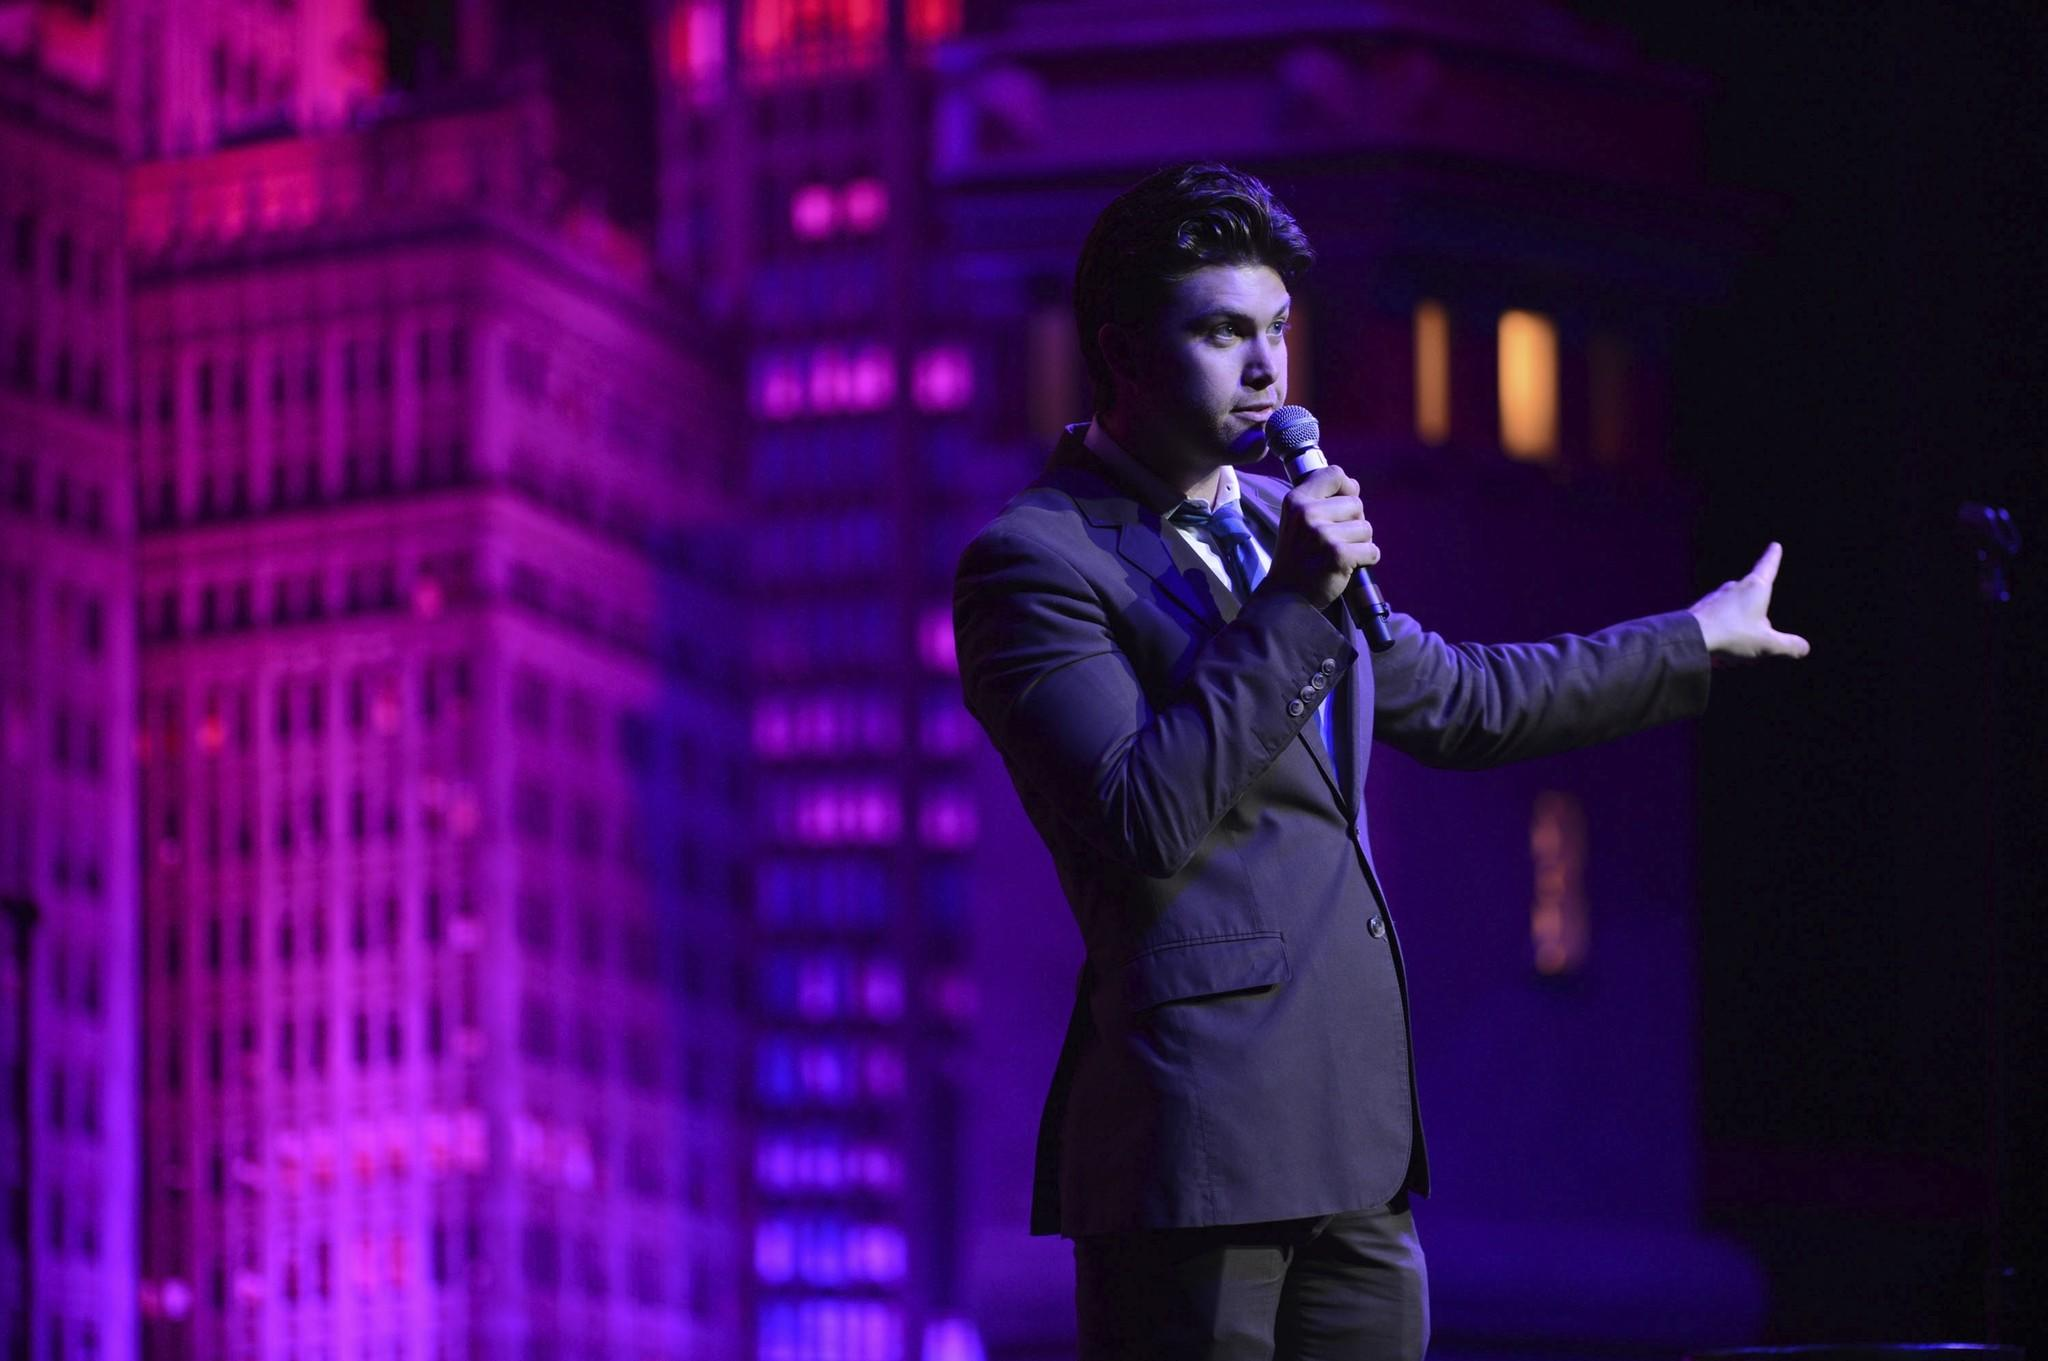 Colin Jost performs onstage at The Chicago Theatre.